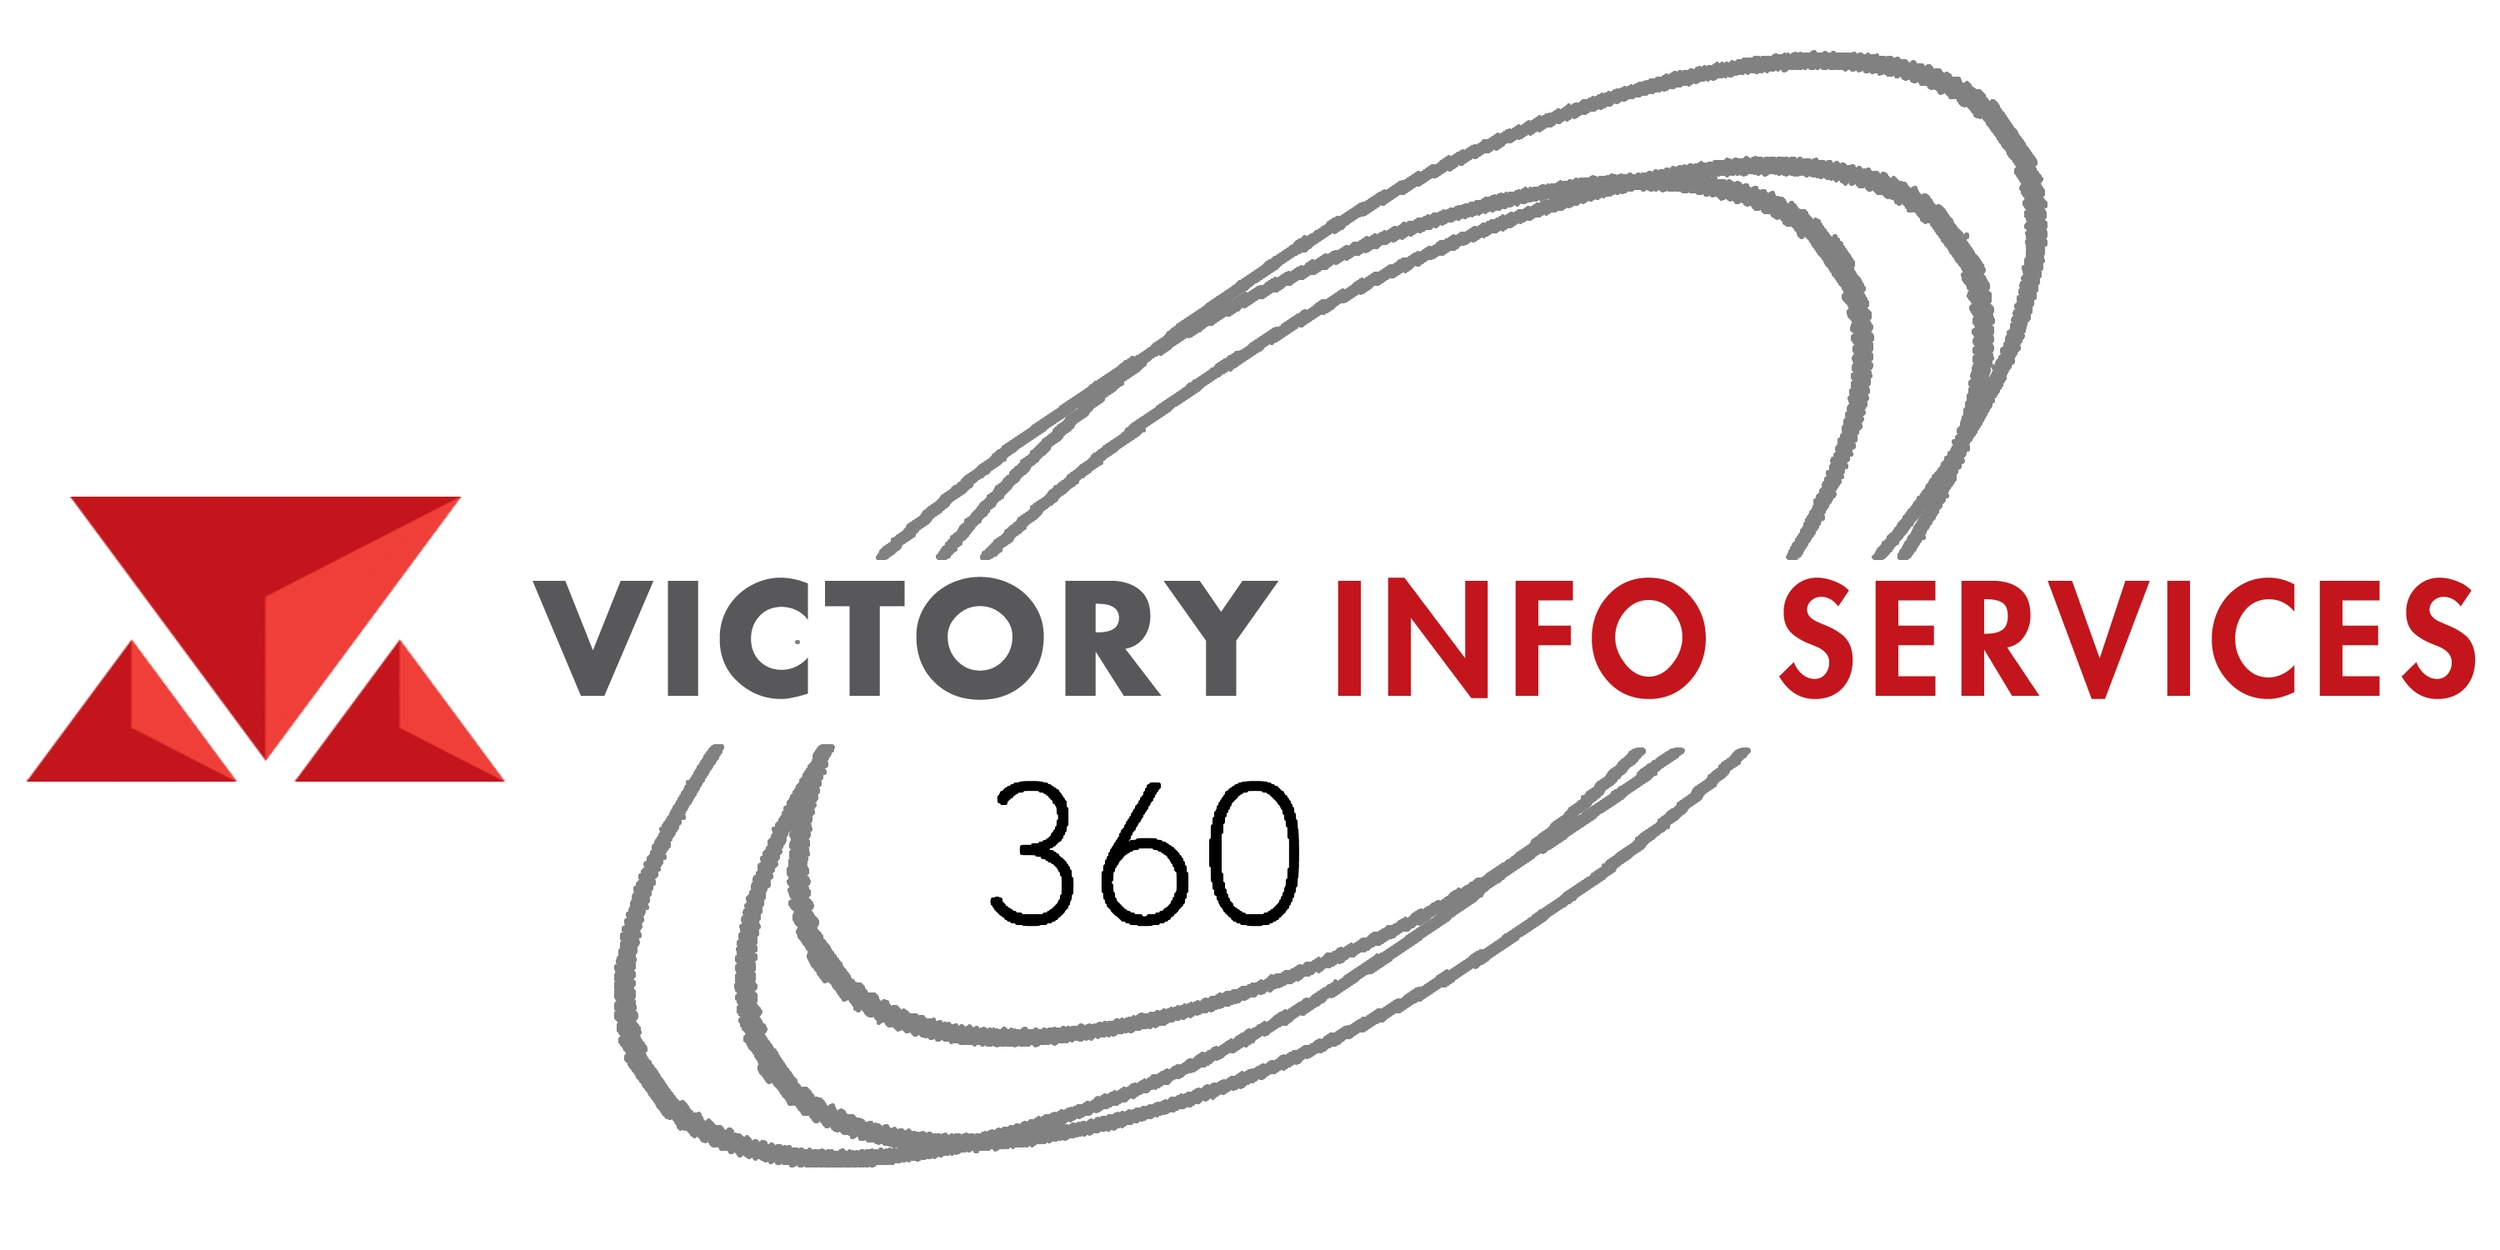 http://victoryinfoservices.com